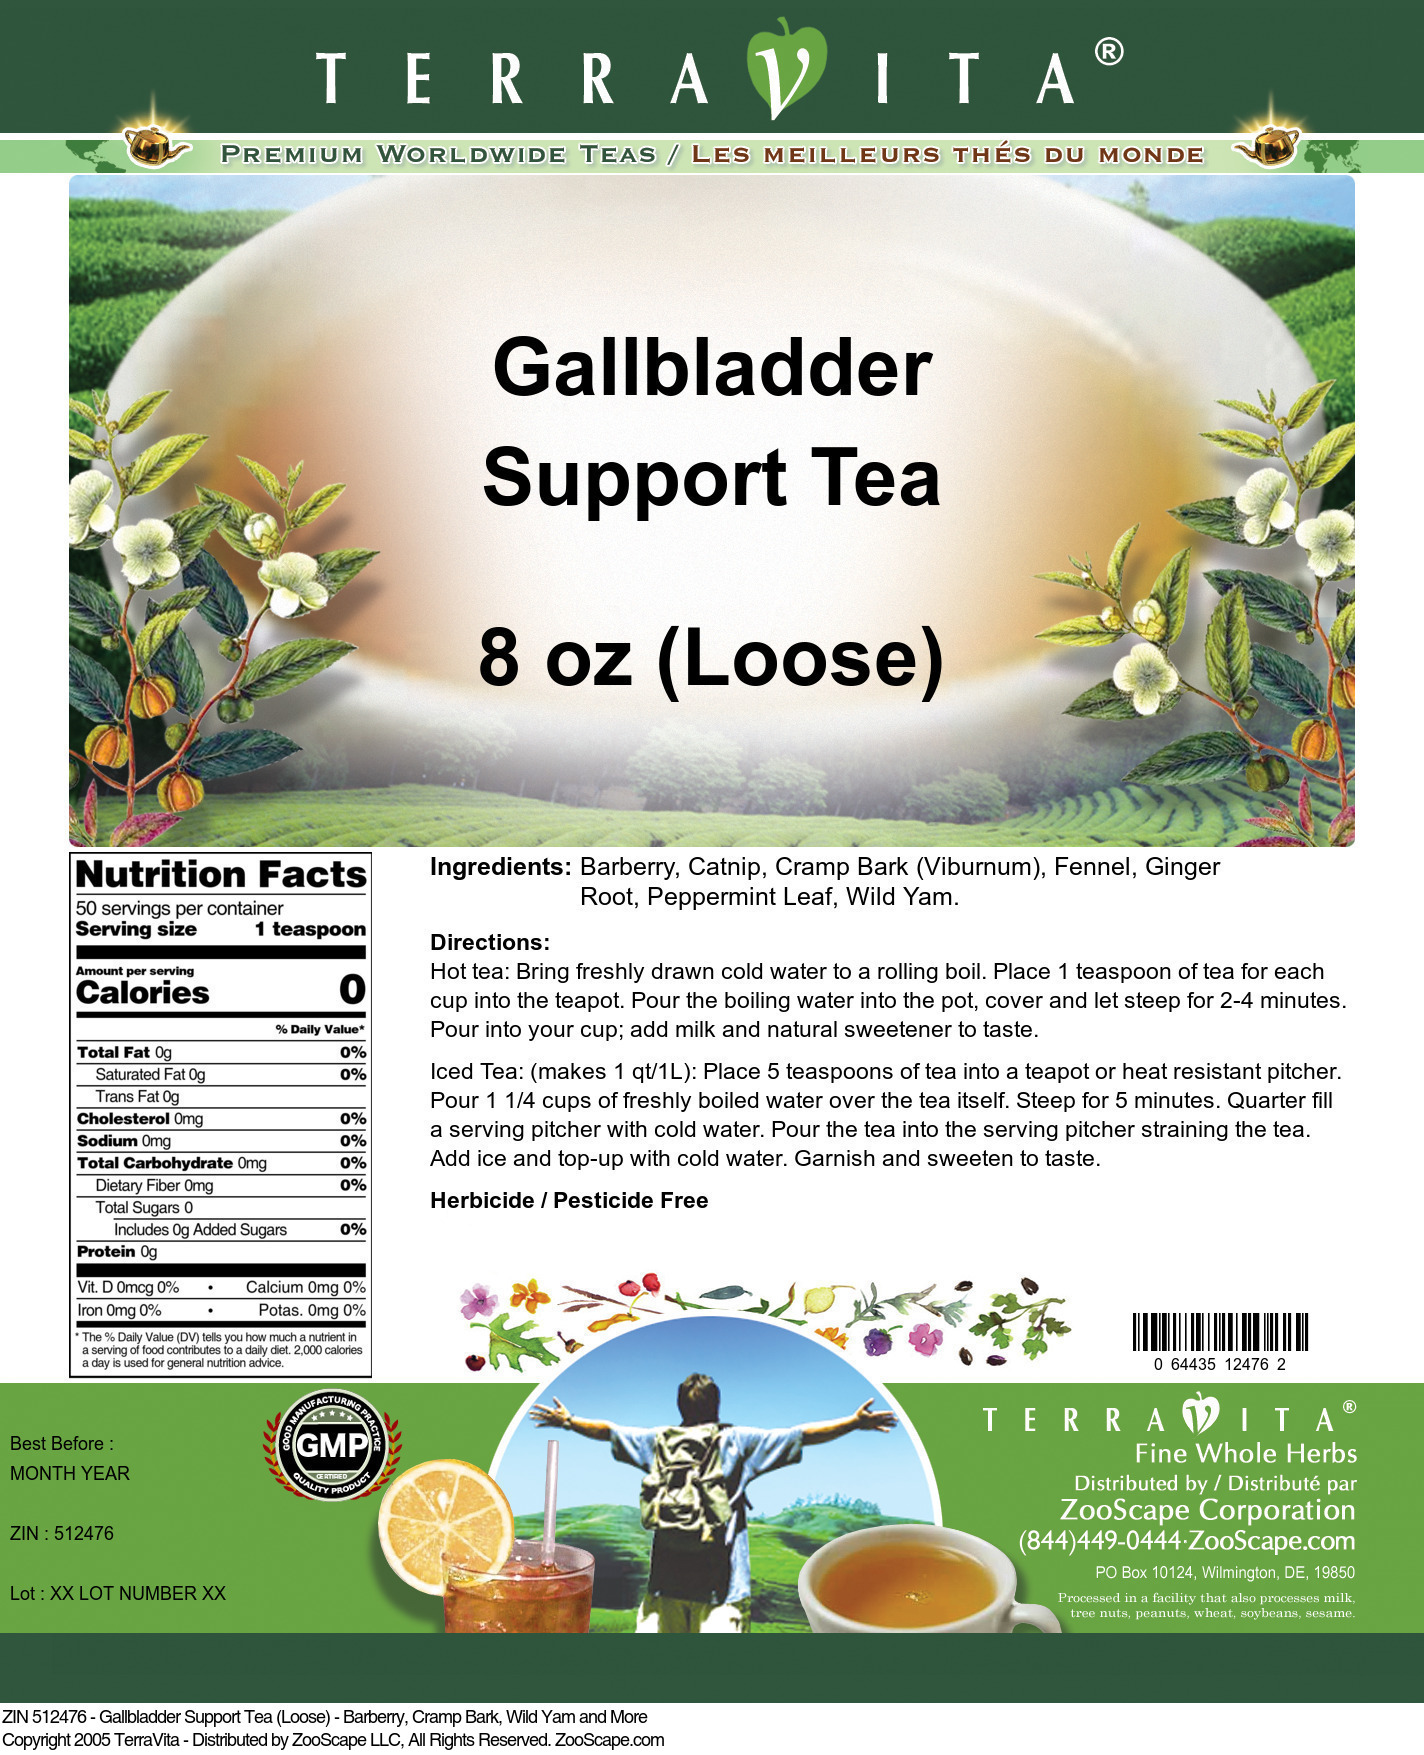 Gallbladder Support Tea (Loose) - Barberry, Cramp Bark, Wild Yam and More